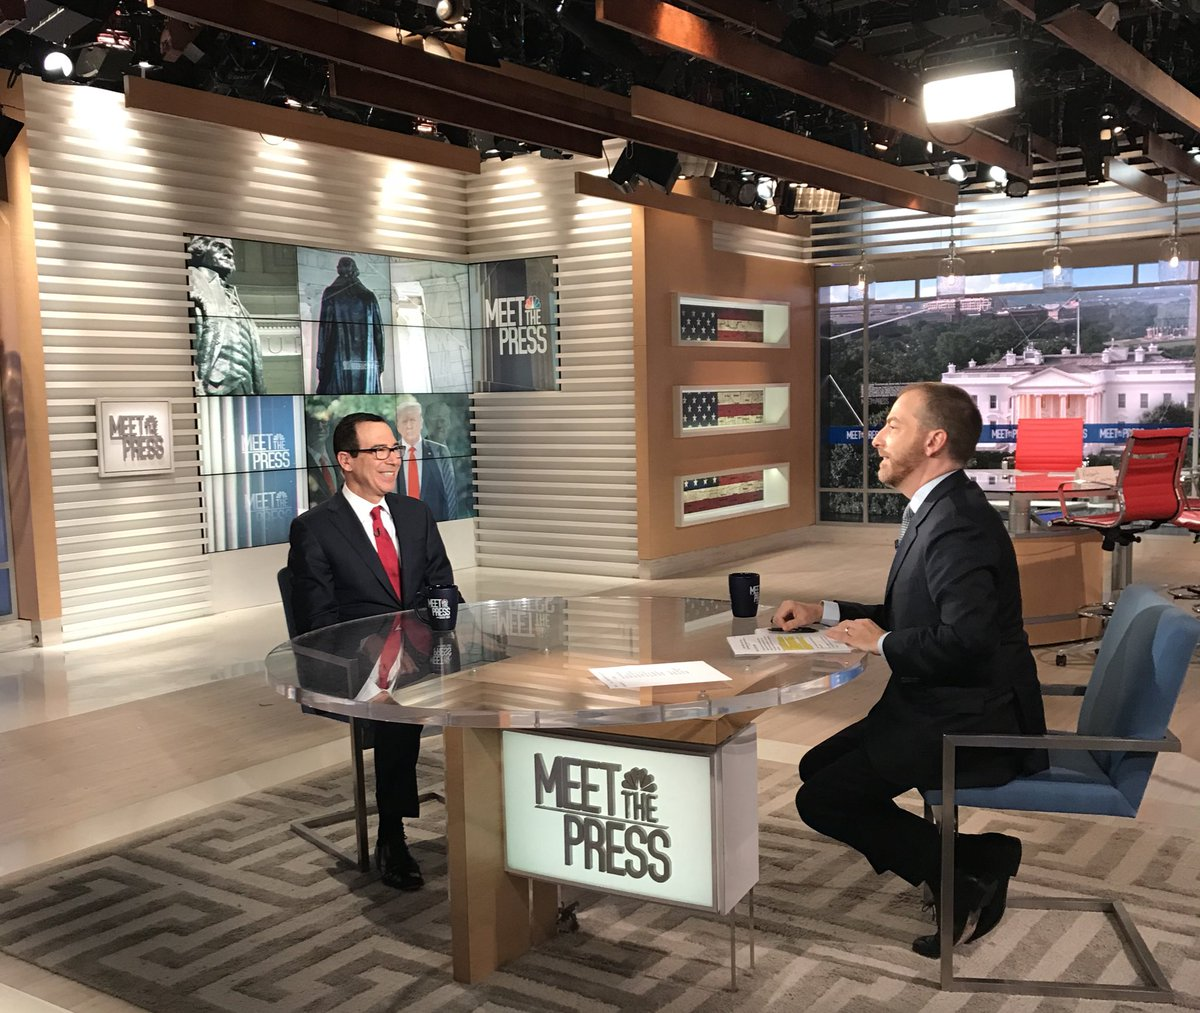 Joined @chucktodd this morning on @MeetThePress to discuss the Iran maximum pressure campaign.